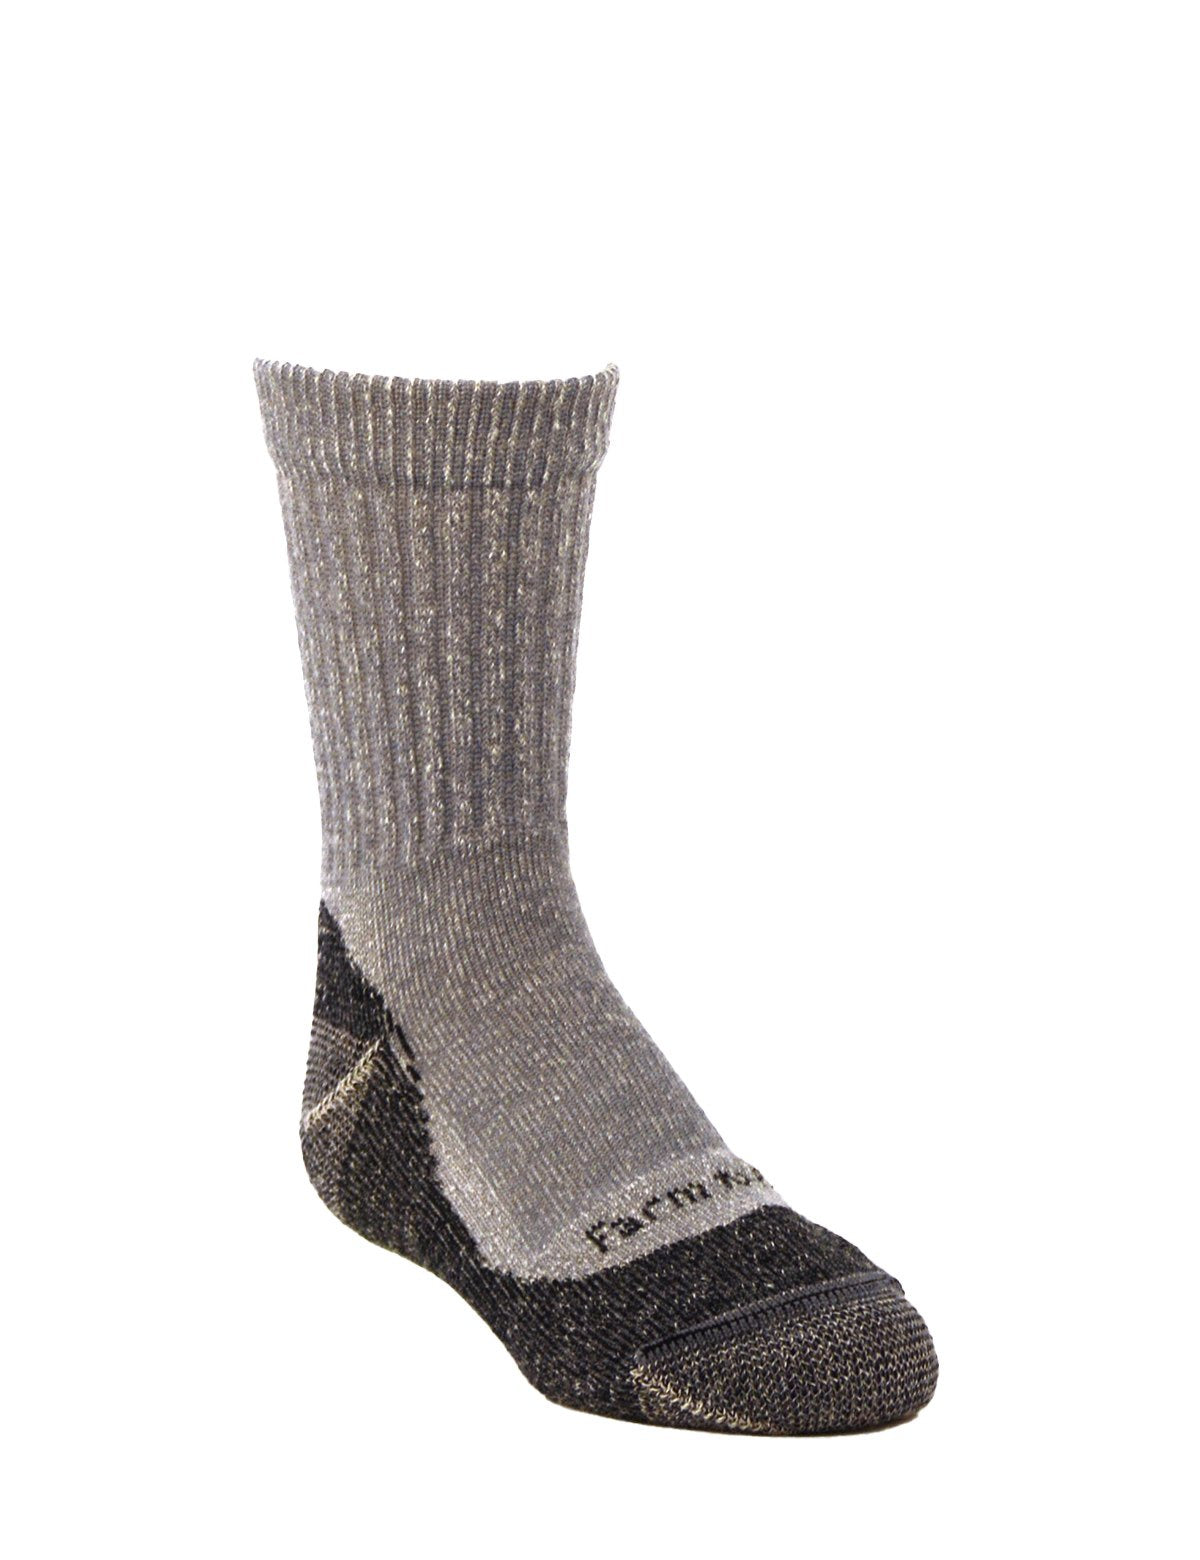 Farm to Feet Kids U.S. Merino Wool No Fly Zone Light Cushion Crew Socks - Boulder Blue